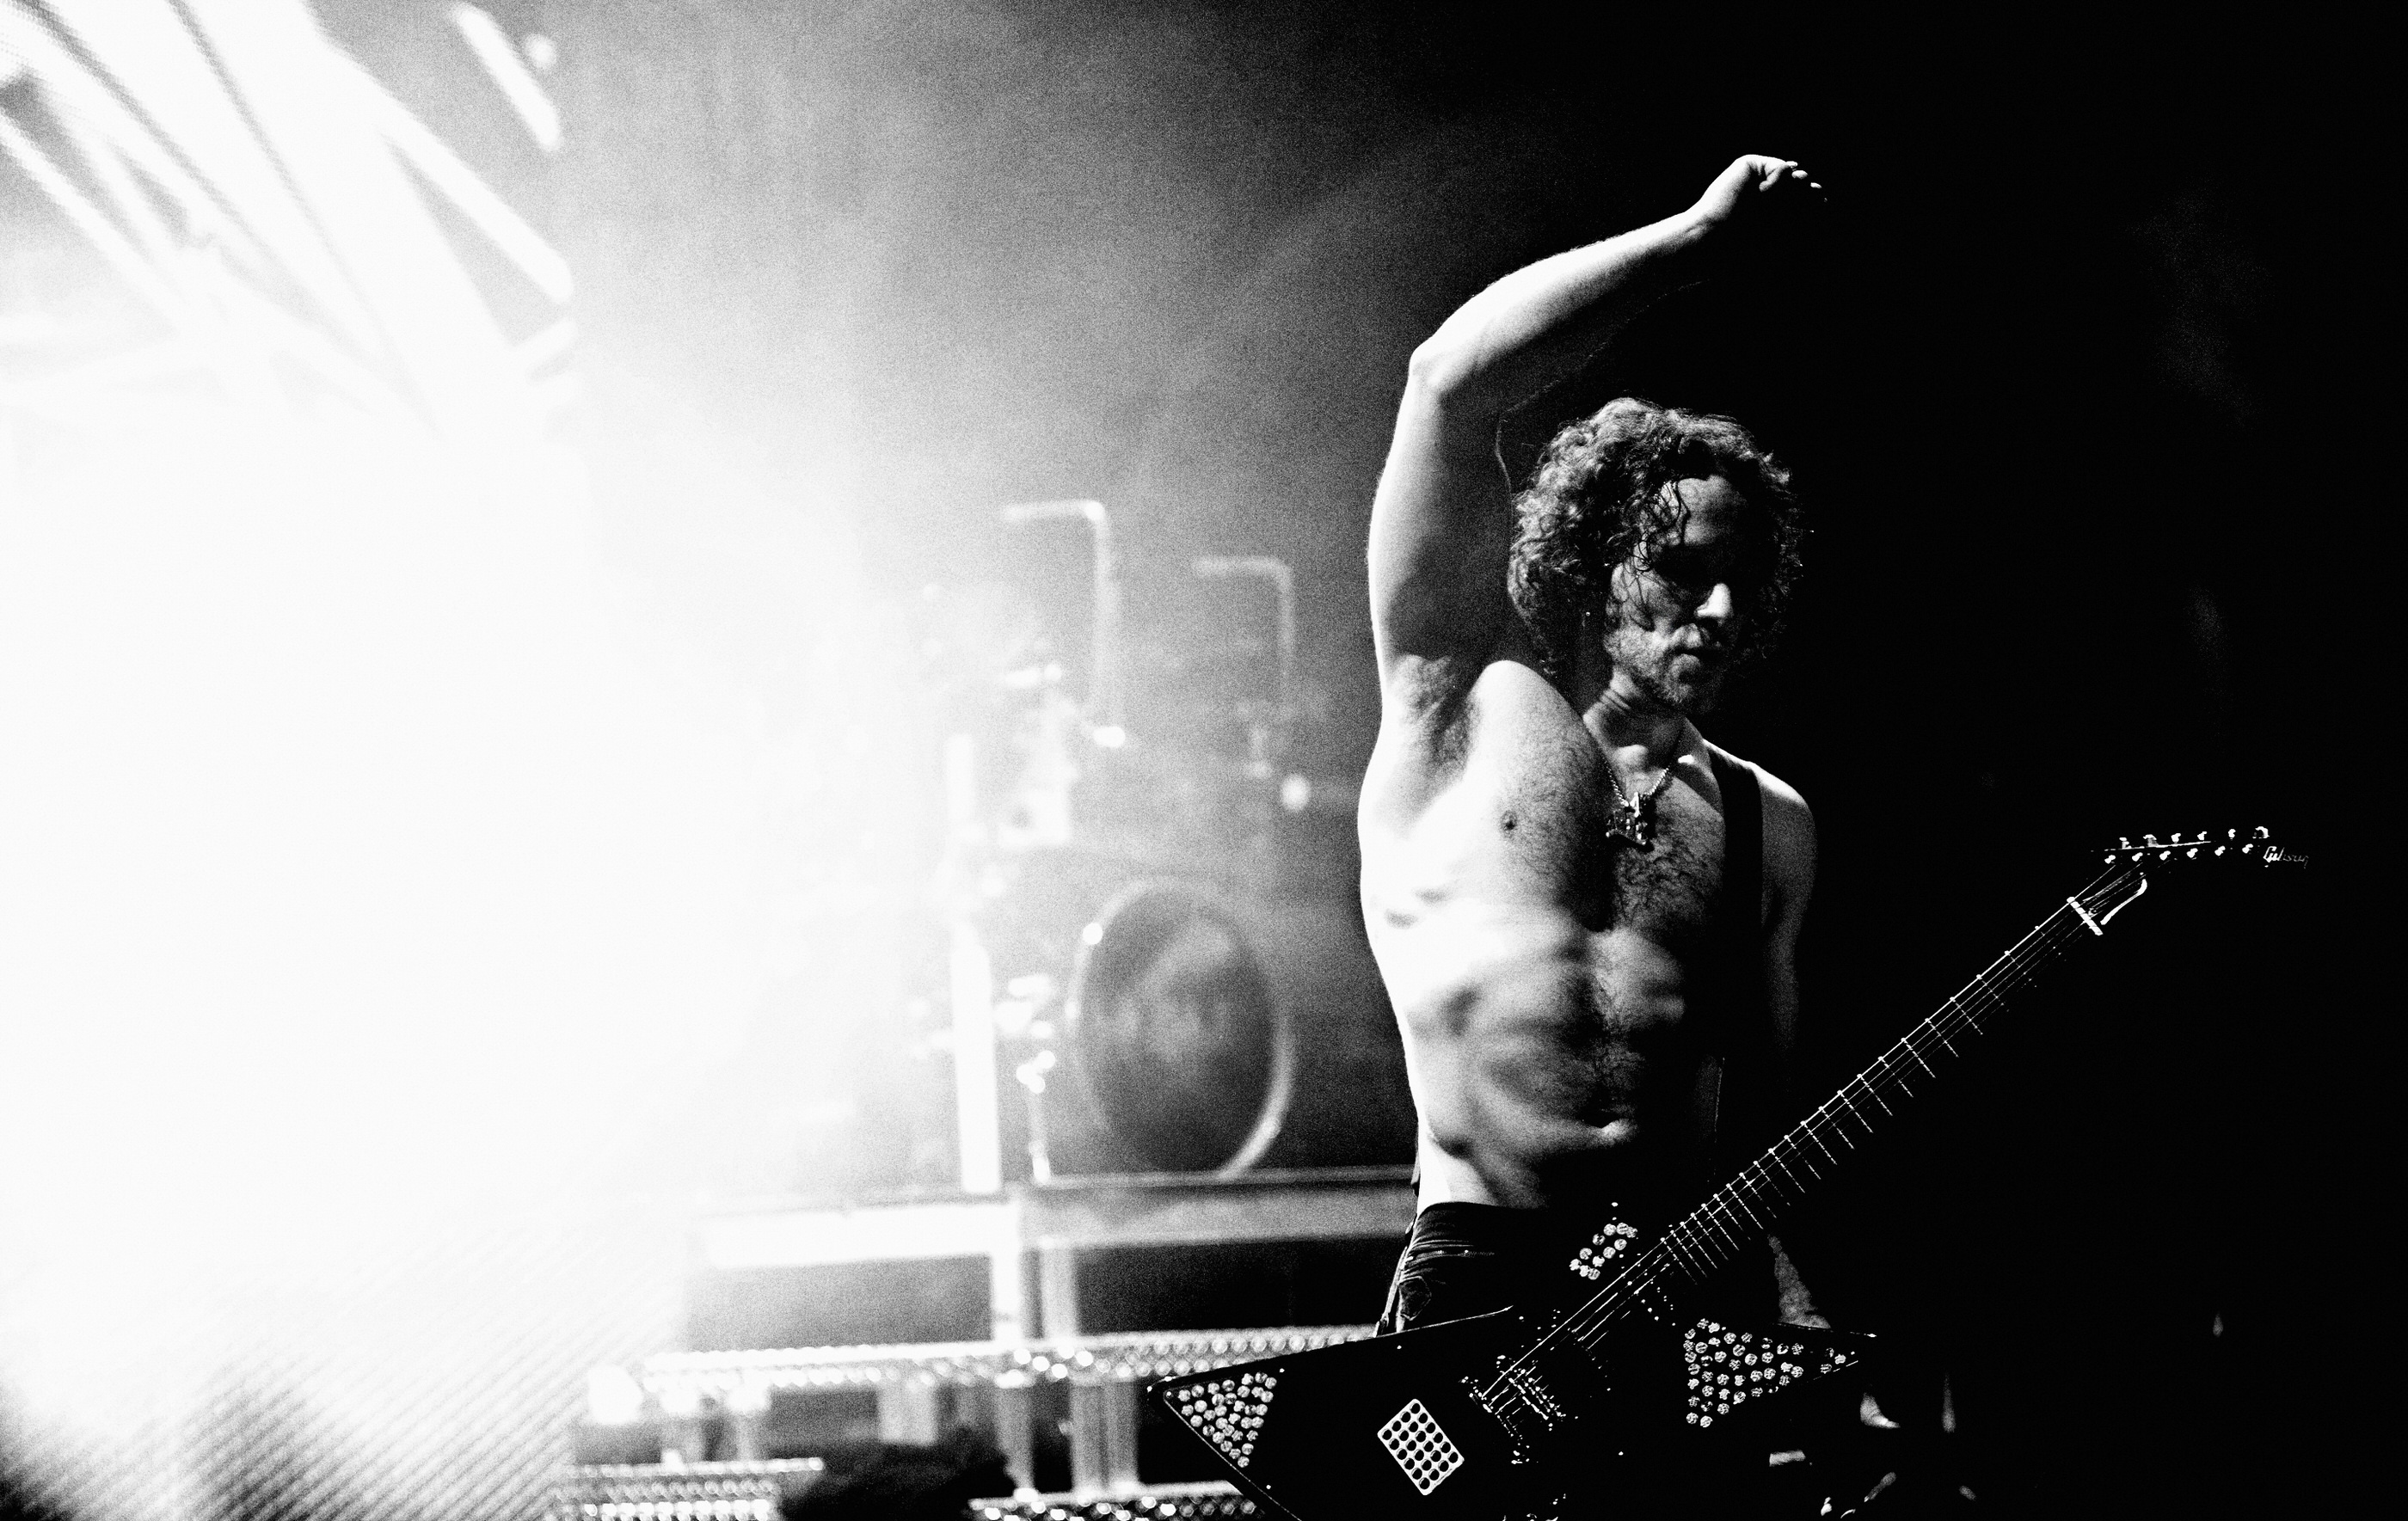 Vivian Campbell Def Leppard Manchester onstage 2008 by Ash Newel